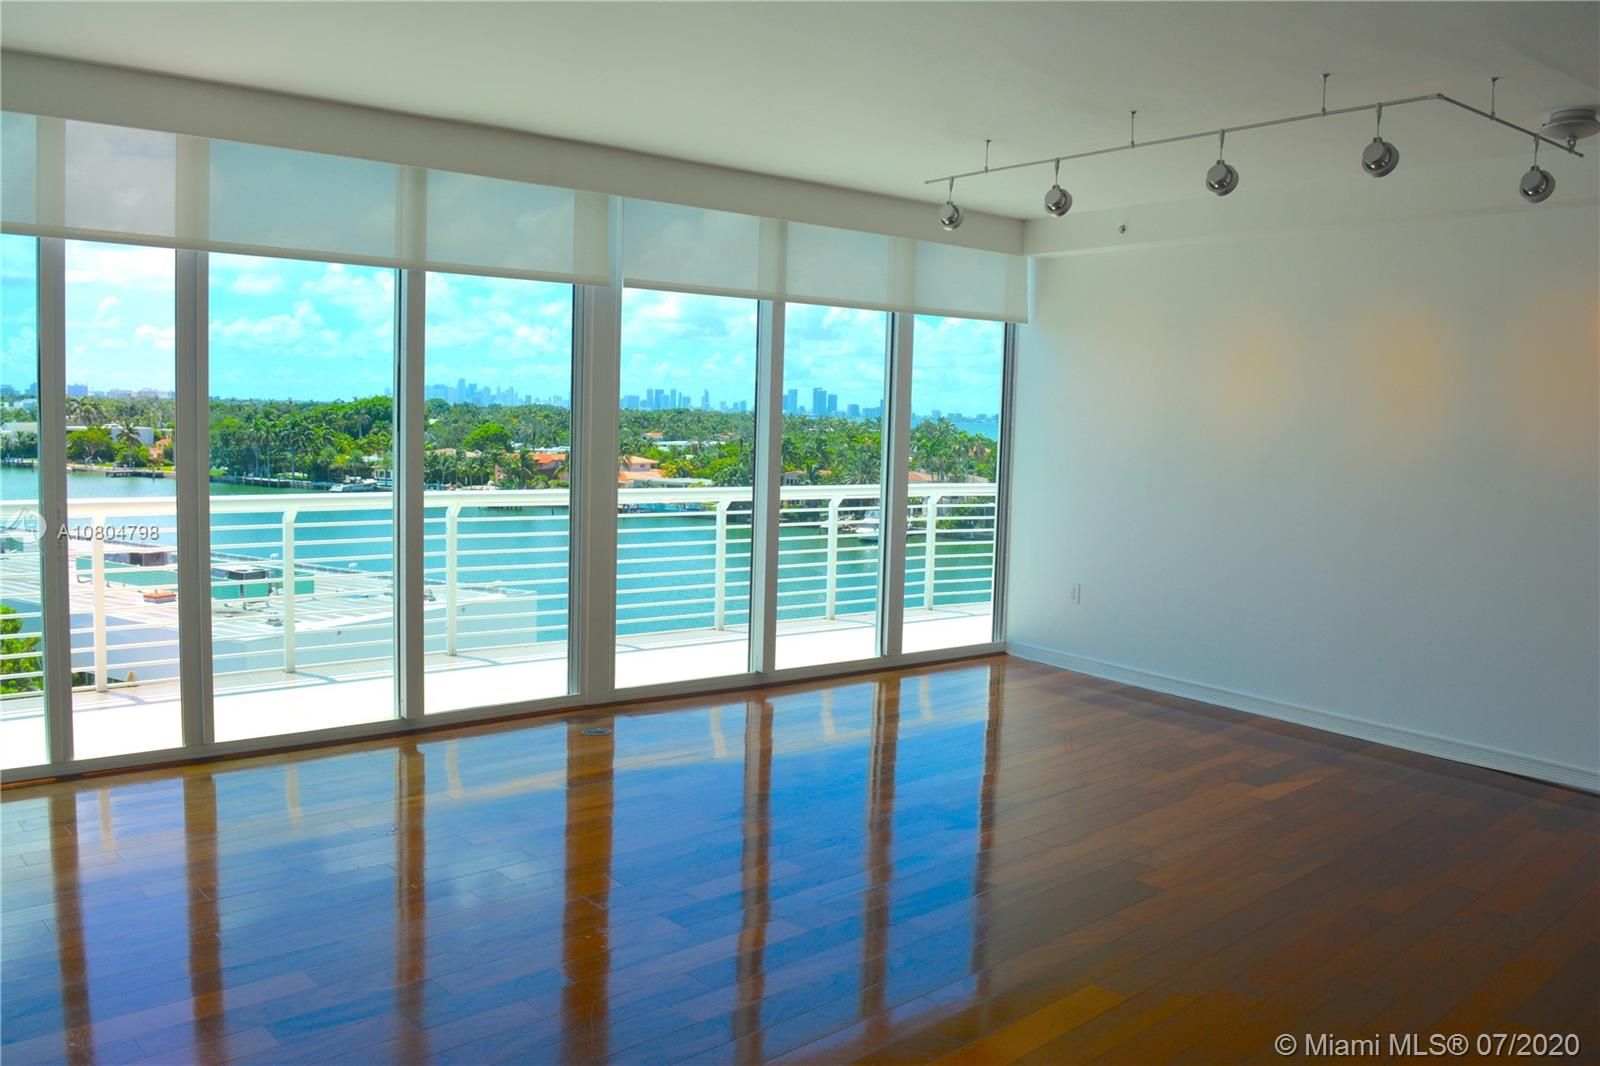 Excellent price for a stunning 1788 SF, 3 bed/3bath Penthouse, with gorgeous intracoastal, bay, ocean, and Miami skyline views at Regatta in Miami Beach. Contemporary, stylish interior, with balcony off the main living area and a private rooftop terrace with whirlpool tub and shower accessed from within the PH. Upscale open kitchen, marble baths, wood and marble floors, modern lighting, high ceilings, impact glass, walk in closet, 2 parking spaces, and glorious sunsets. Main level living area, kitchen, and bedrooms in pristine condition, brand new jacuzzi deck on the rooftop terrace. The 52 unit Regatta enjoys a waters edge pool, whirlpool, gym, concierge, and 9 slip marina. Ideally located midway between South Beach and Bal Harbour, just steps from the beach. Ready for occupancy!